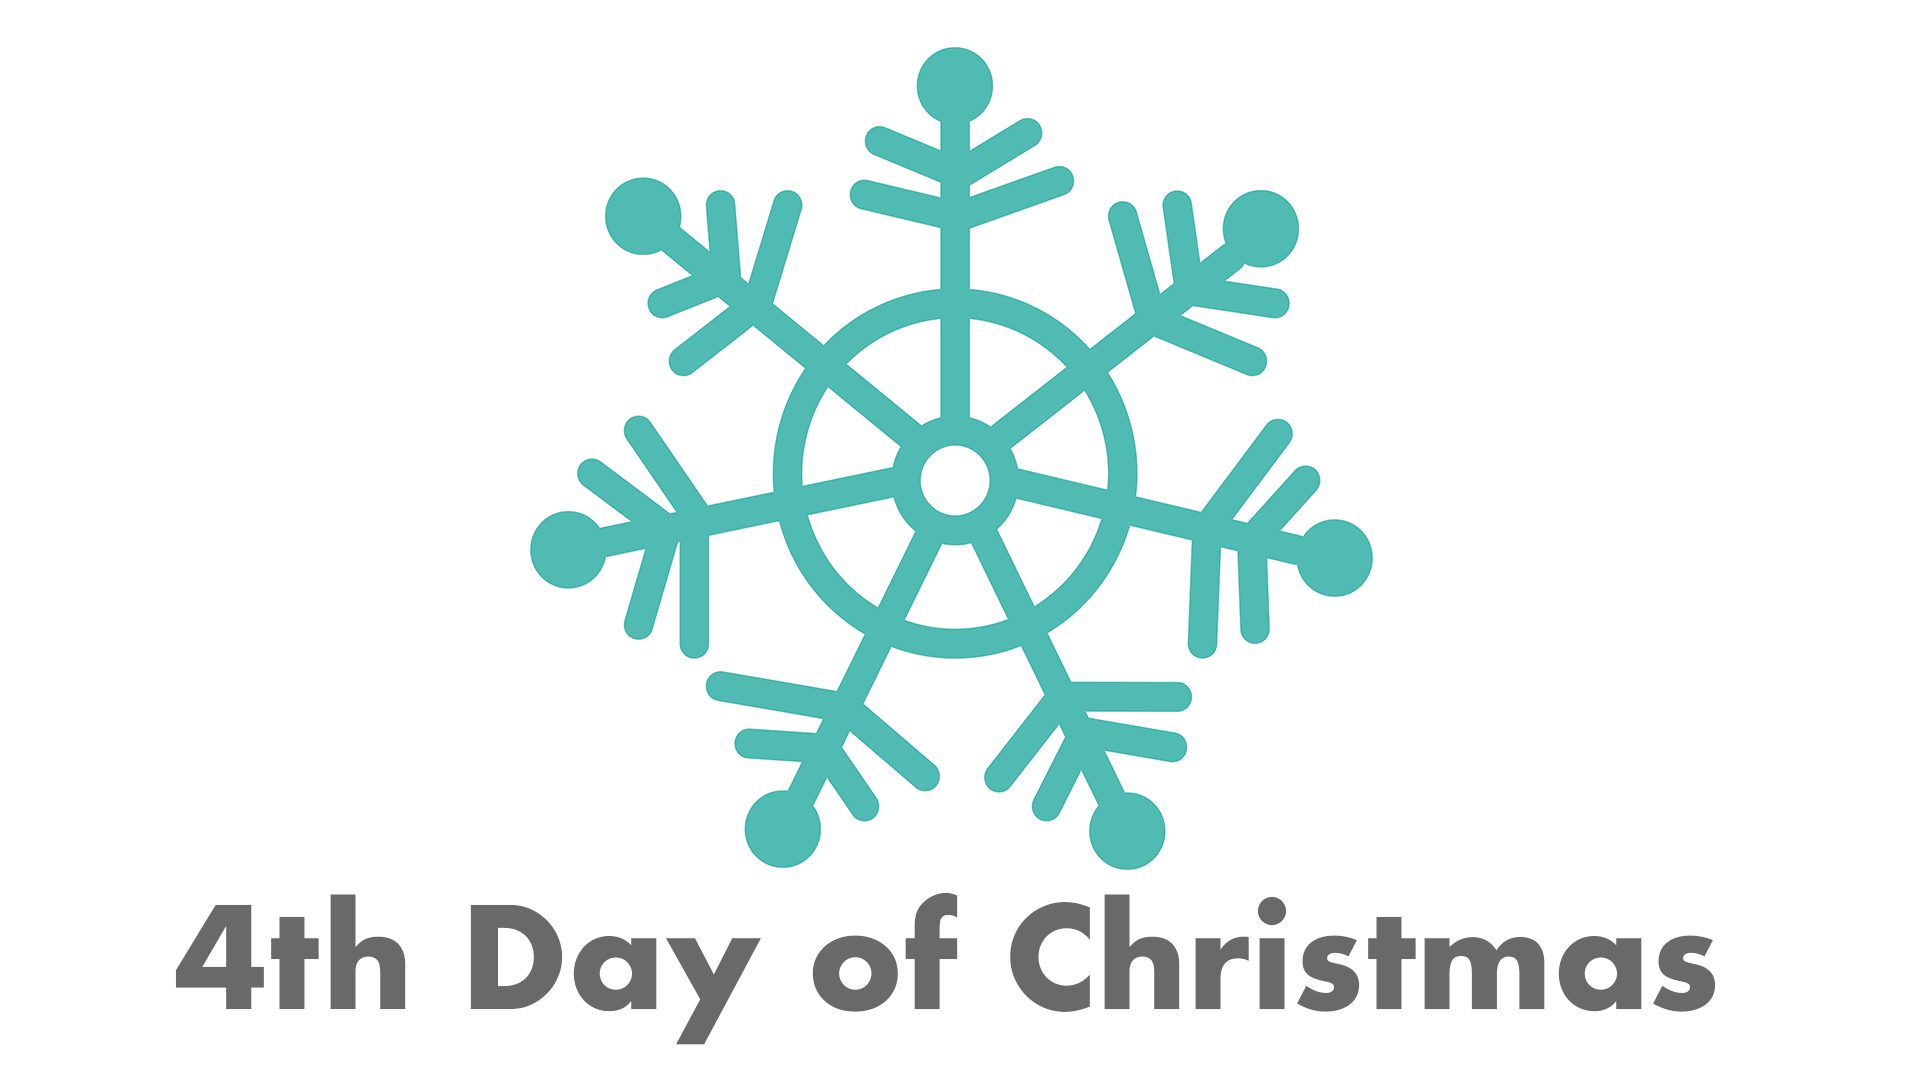 DAY 4 snowflake with text.png